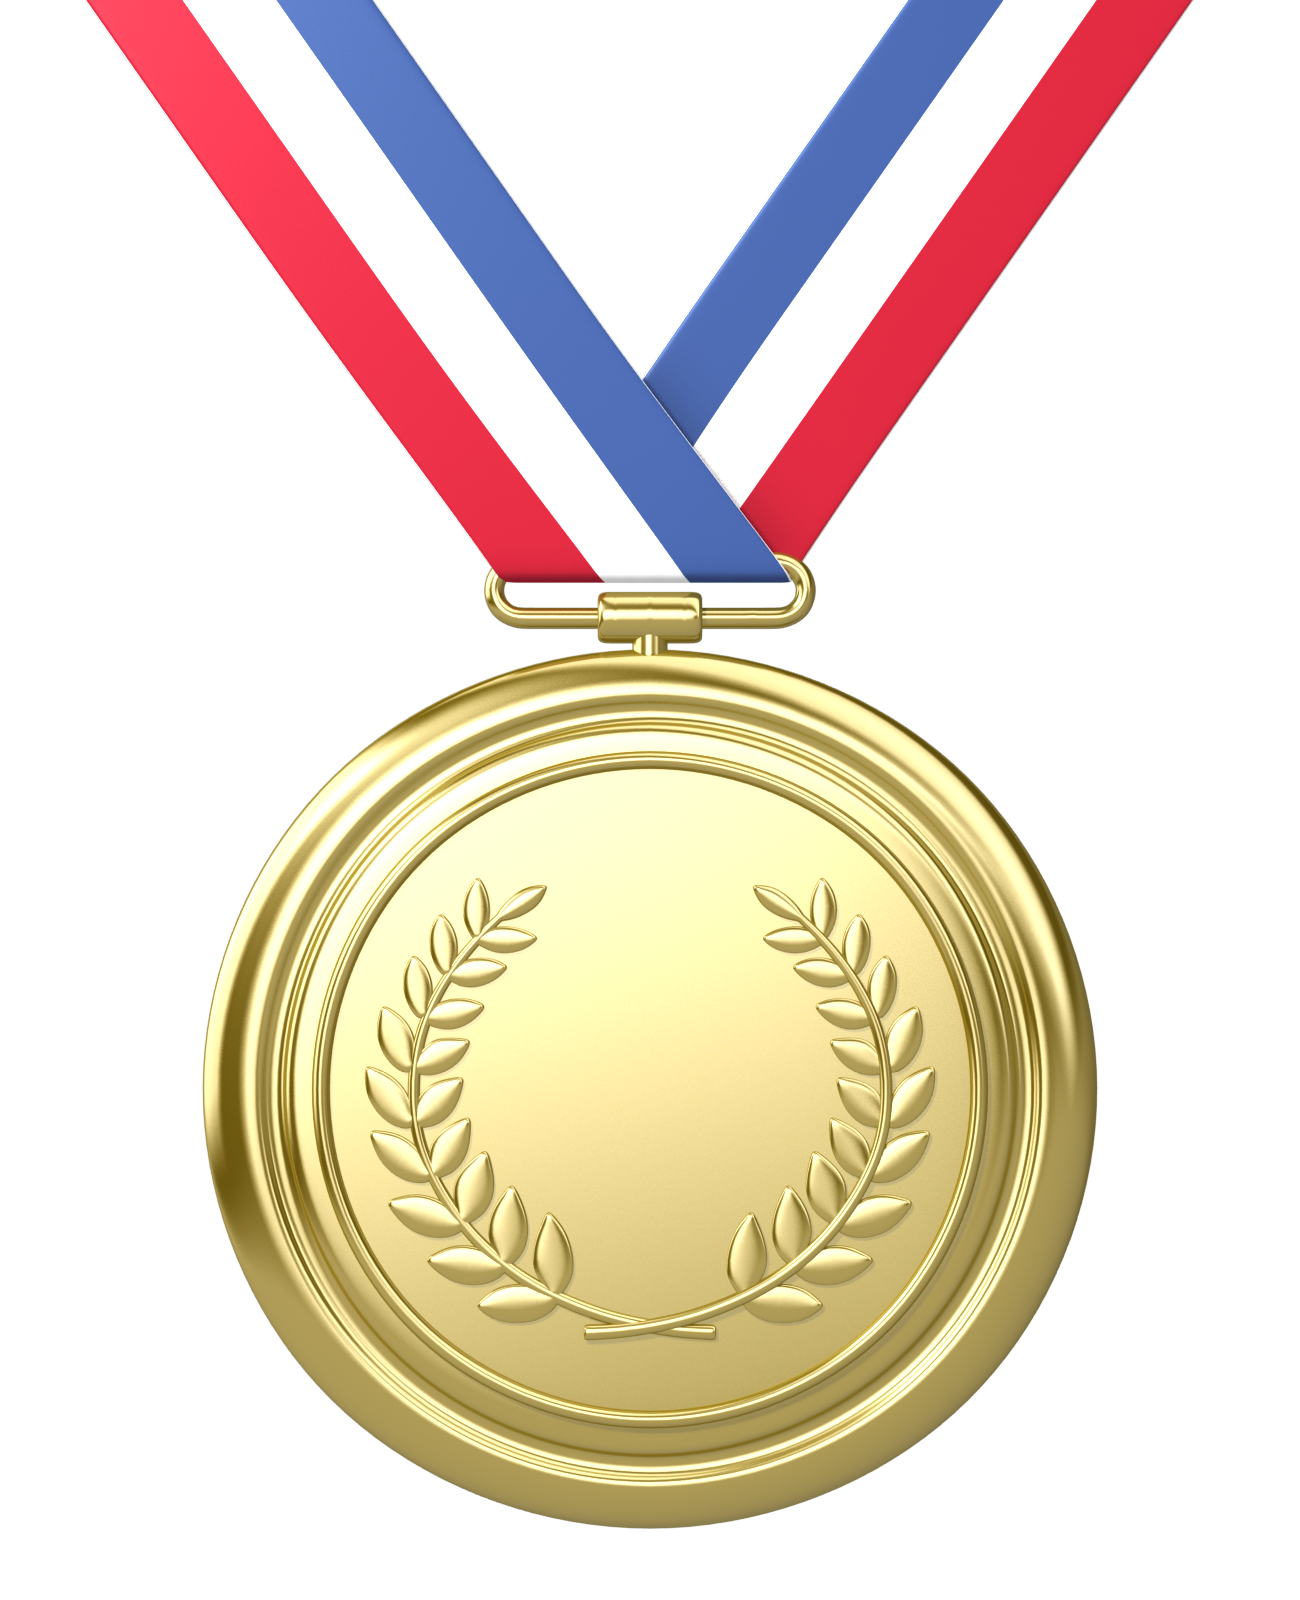 Personal gold medal.